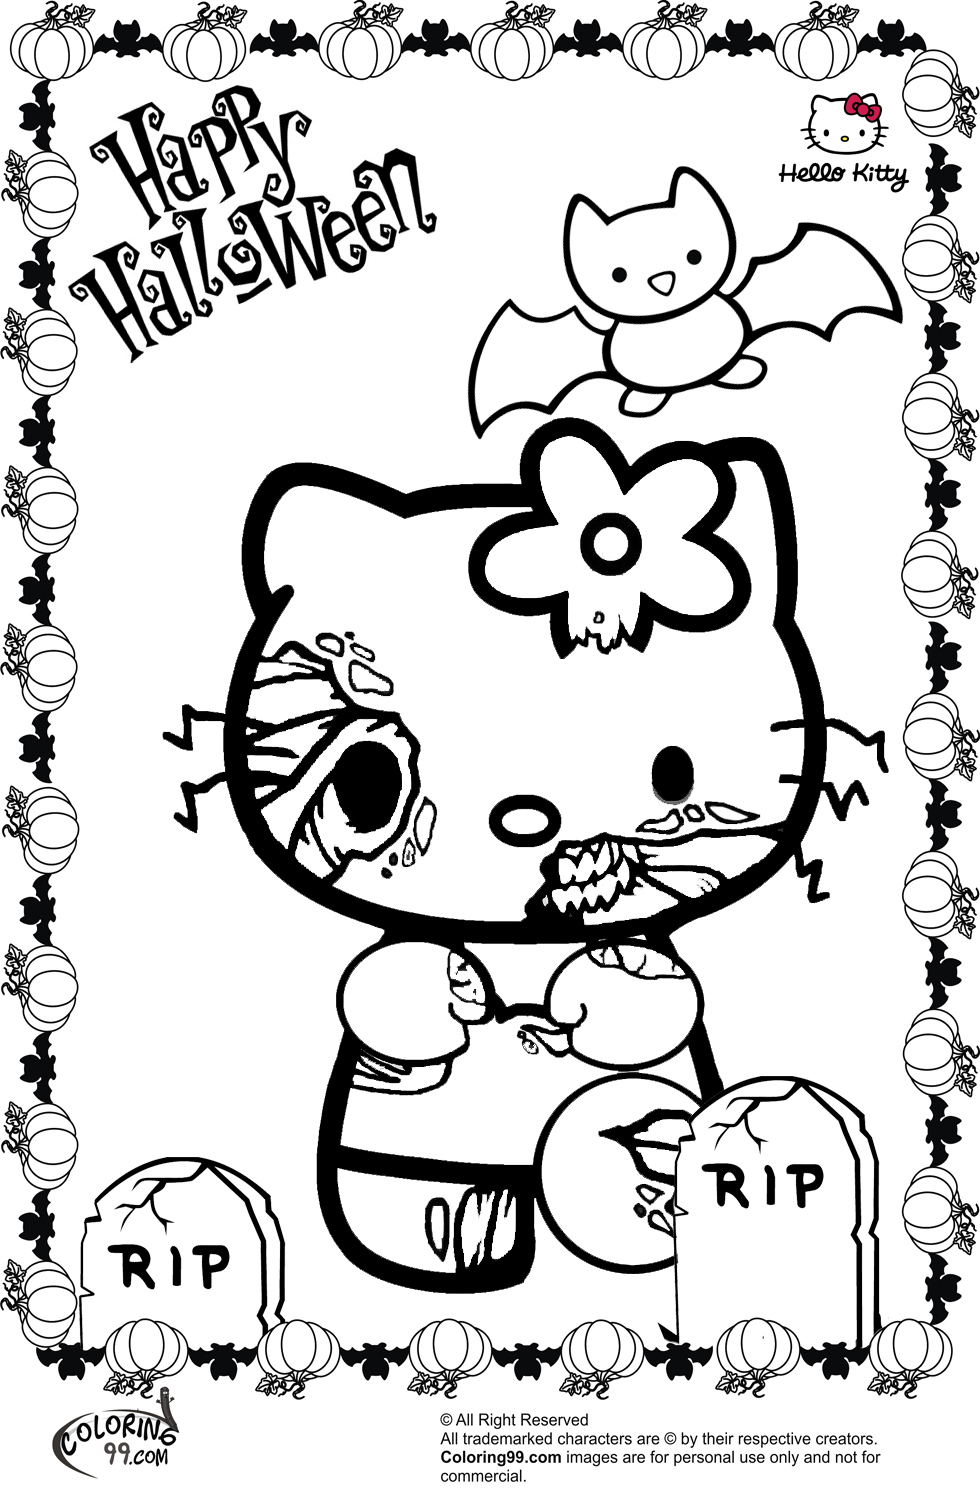 haloween coloring pages halloween coloring pages free printable minnesota miranda haloween coloring pages